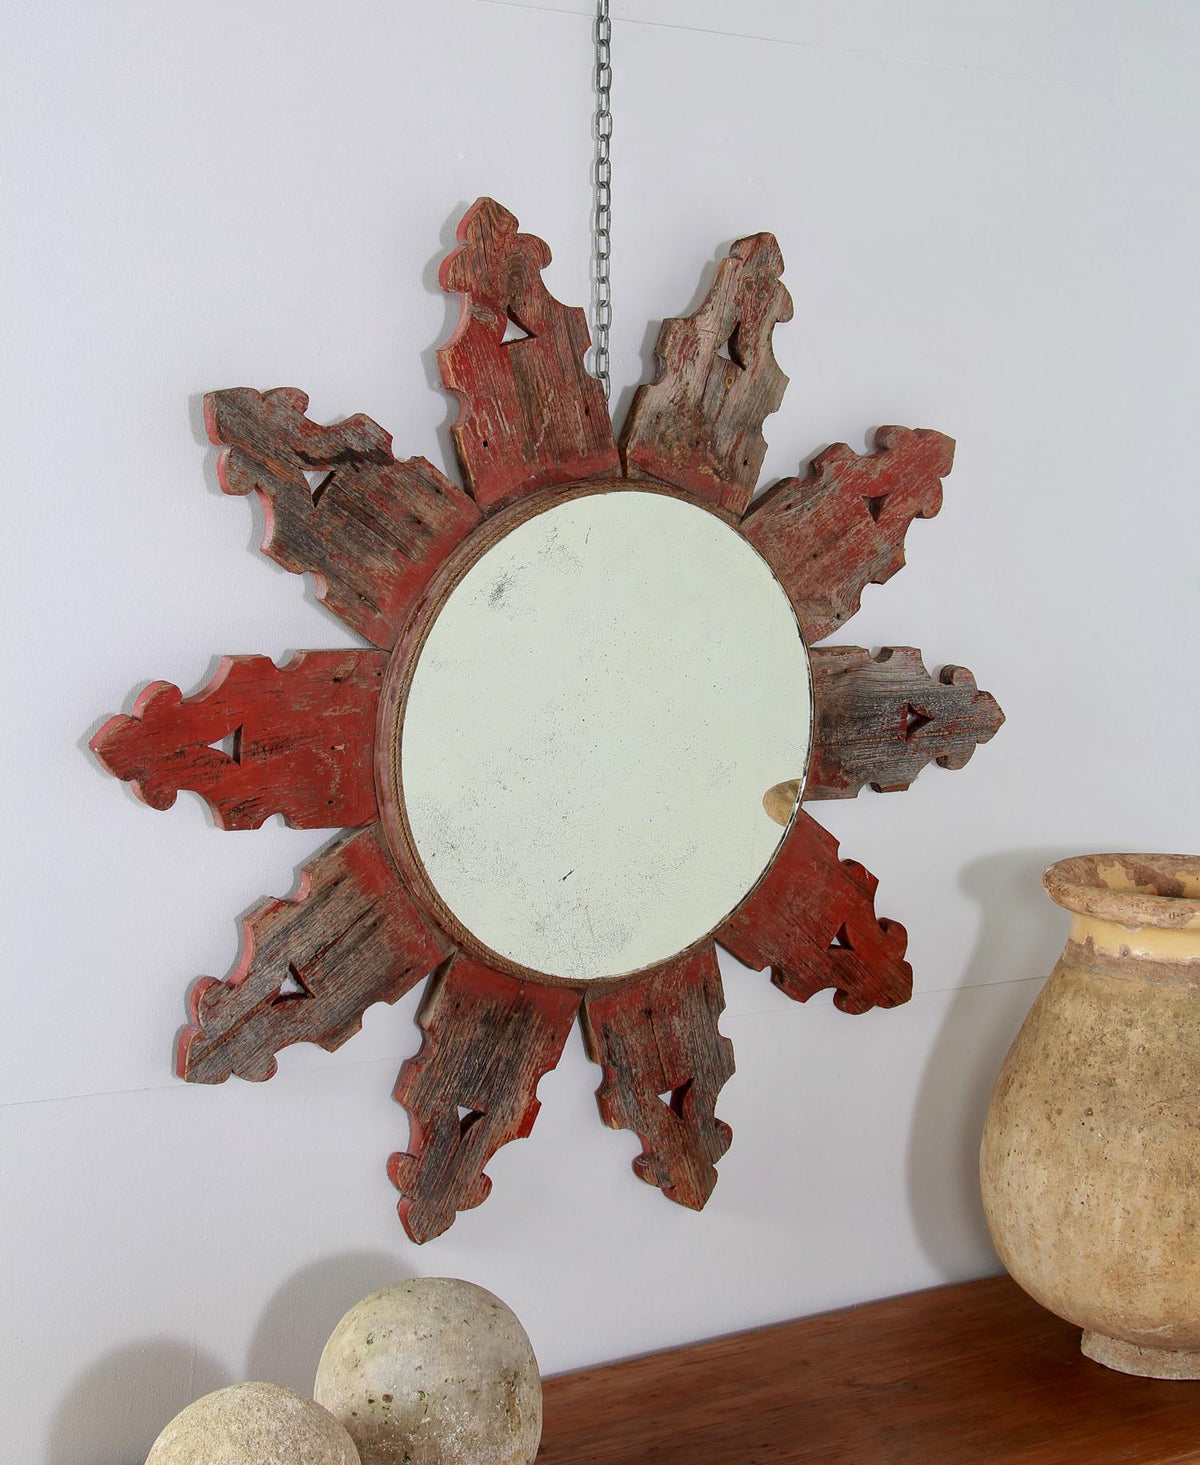 Grand Scale Unique French Architectural Wooden Mirrors